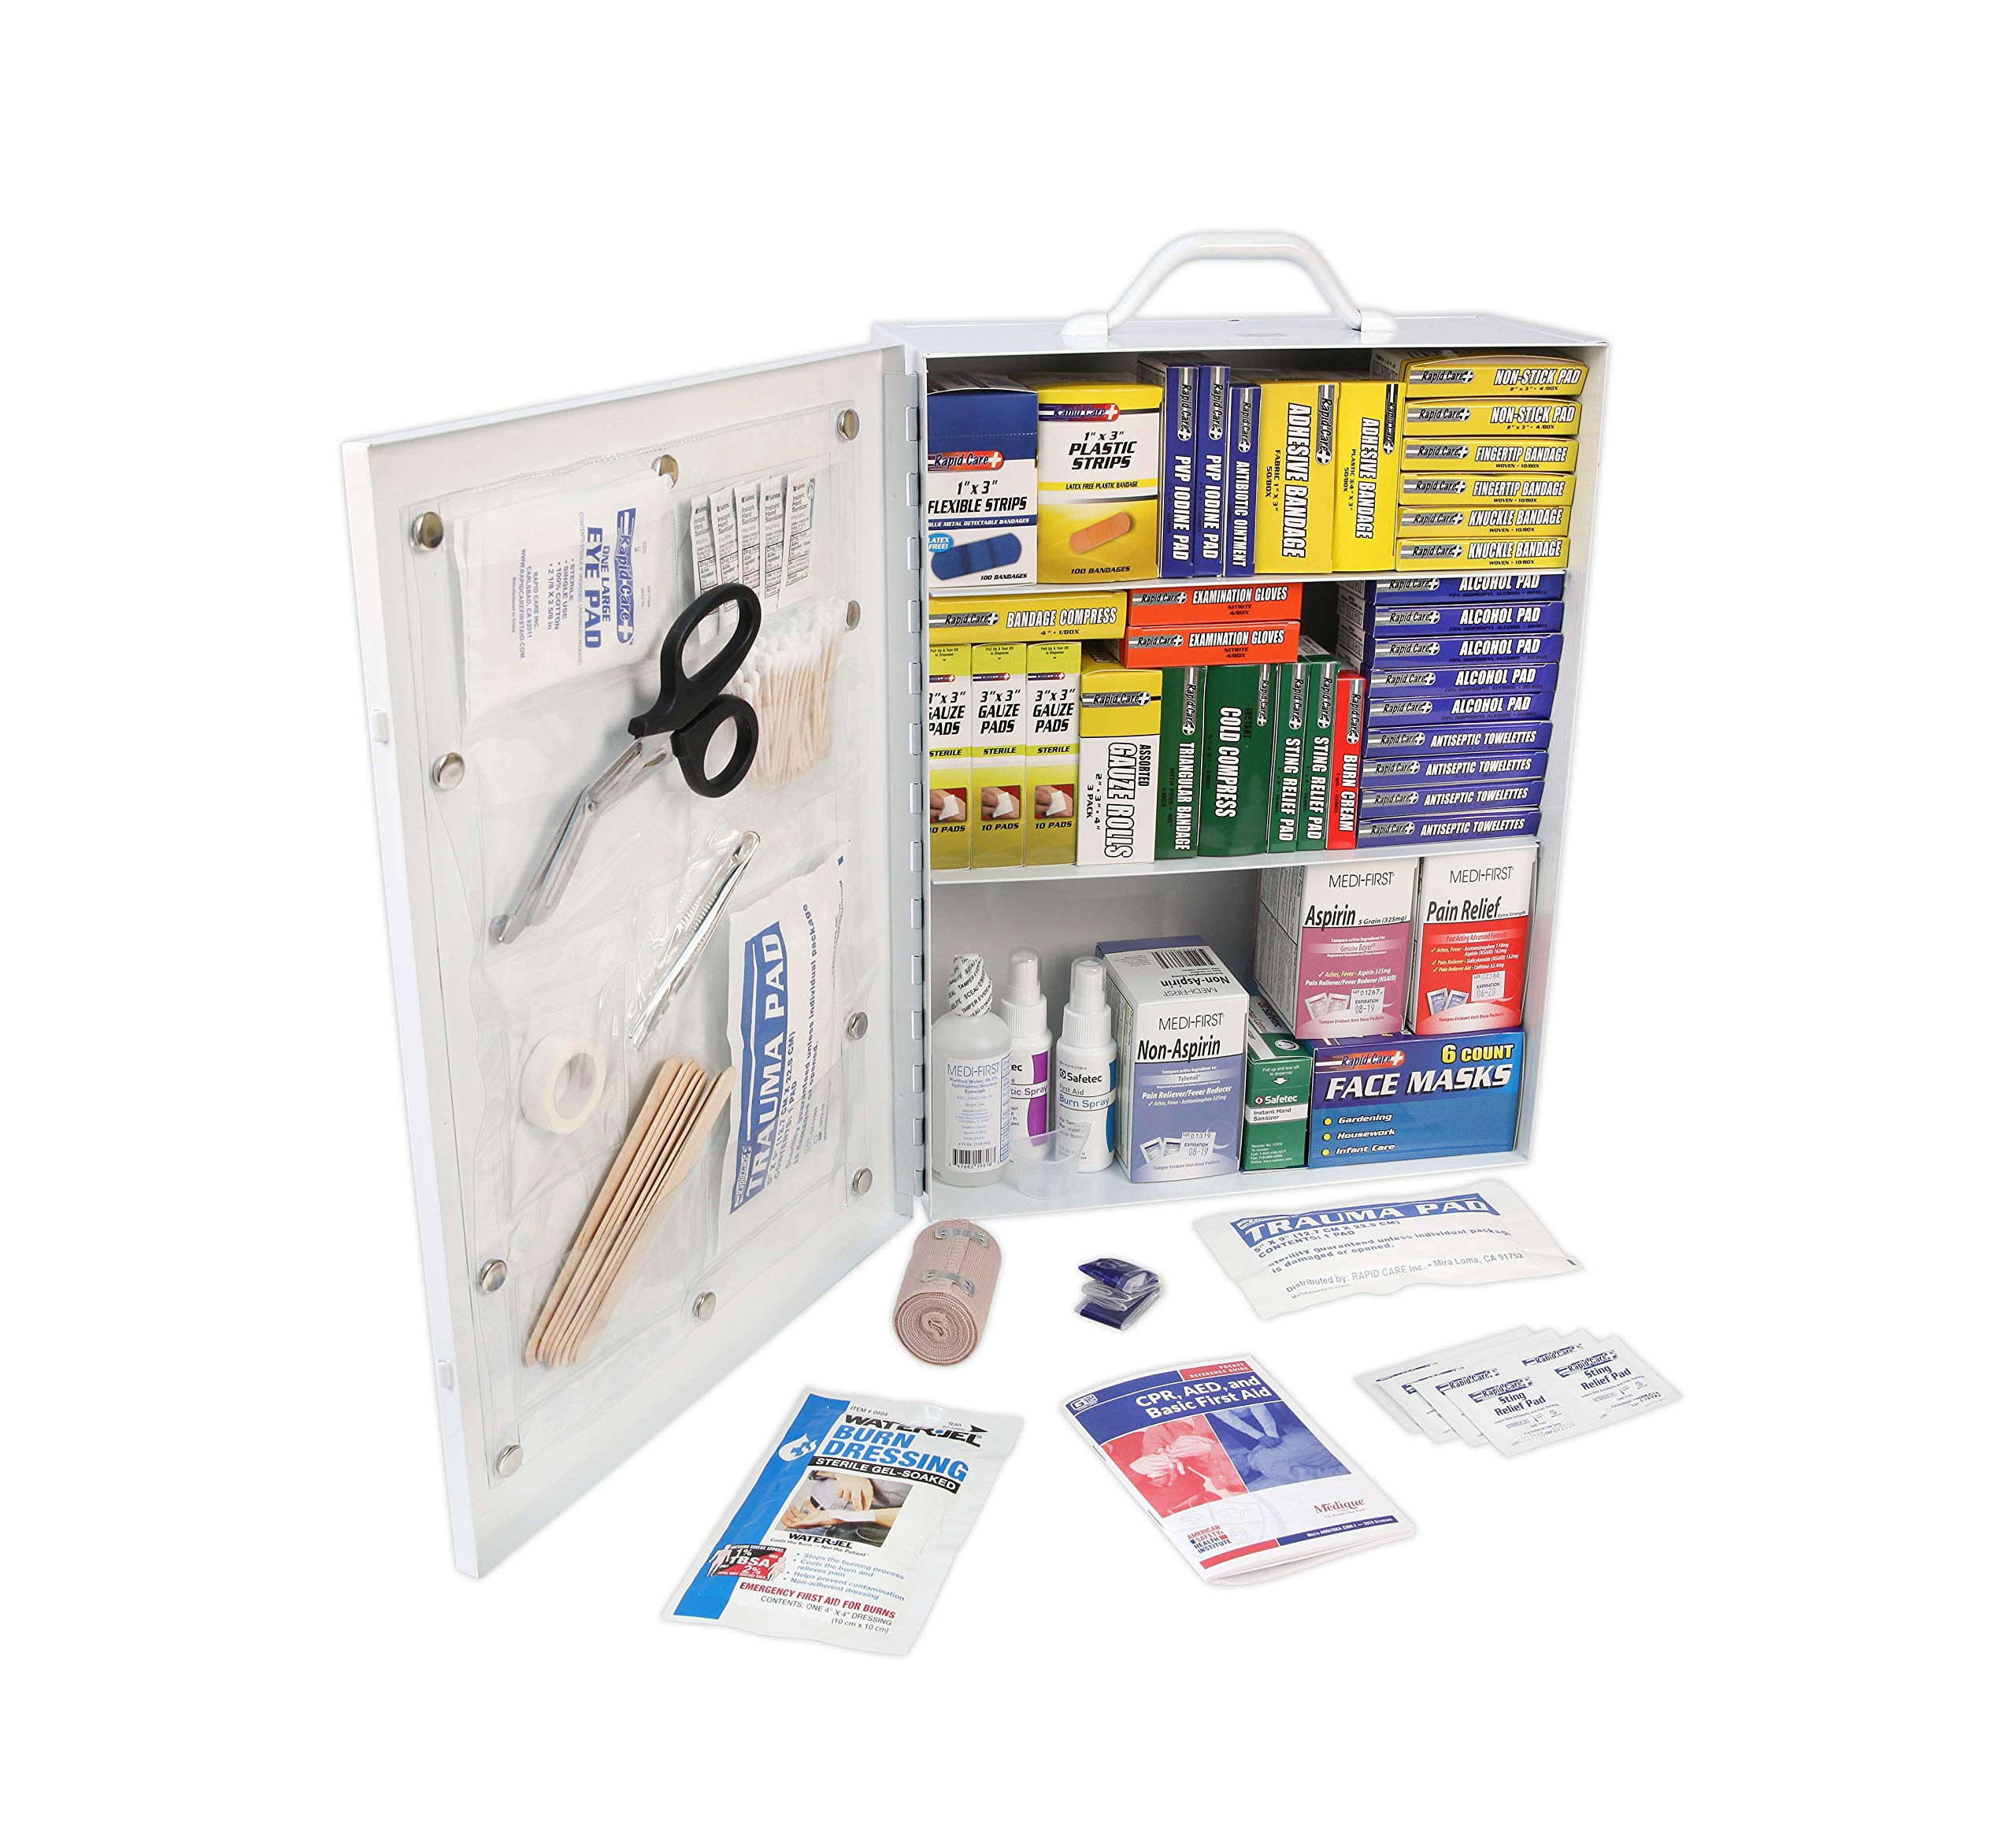 Rapid Care First Aid 80098 3 Shelf All Purpose First Aid Kit Cabinet, Class A+, Exceeds OSHA/ANSI Z308.1 2015, Wall Mountable, Over 1,100 Pieces by Rapid Care First Aid